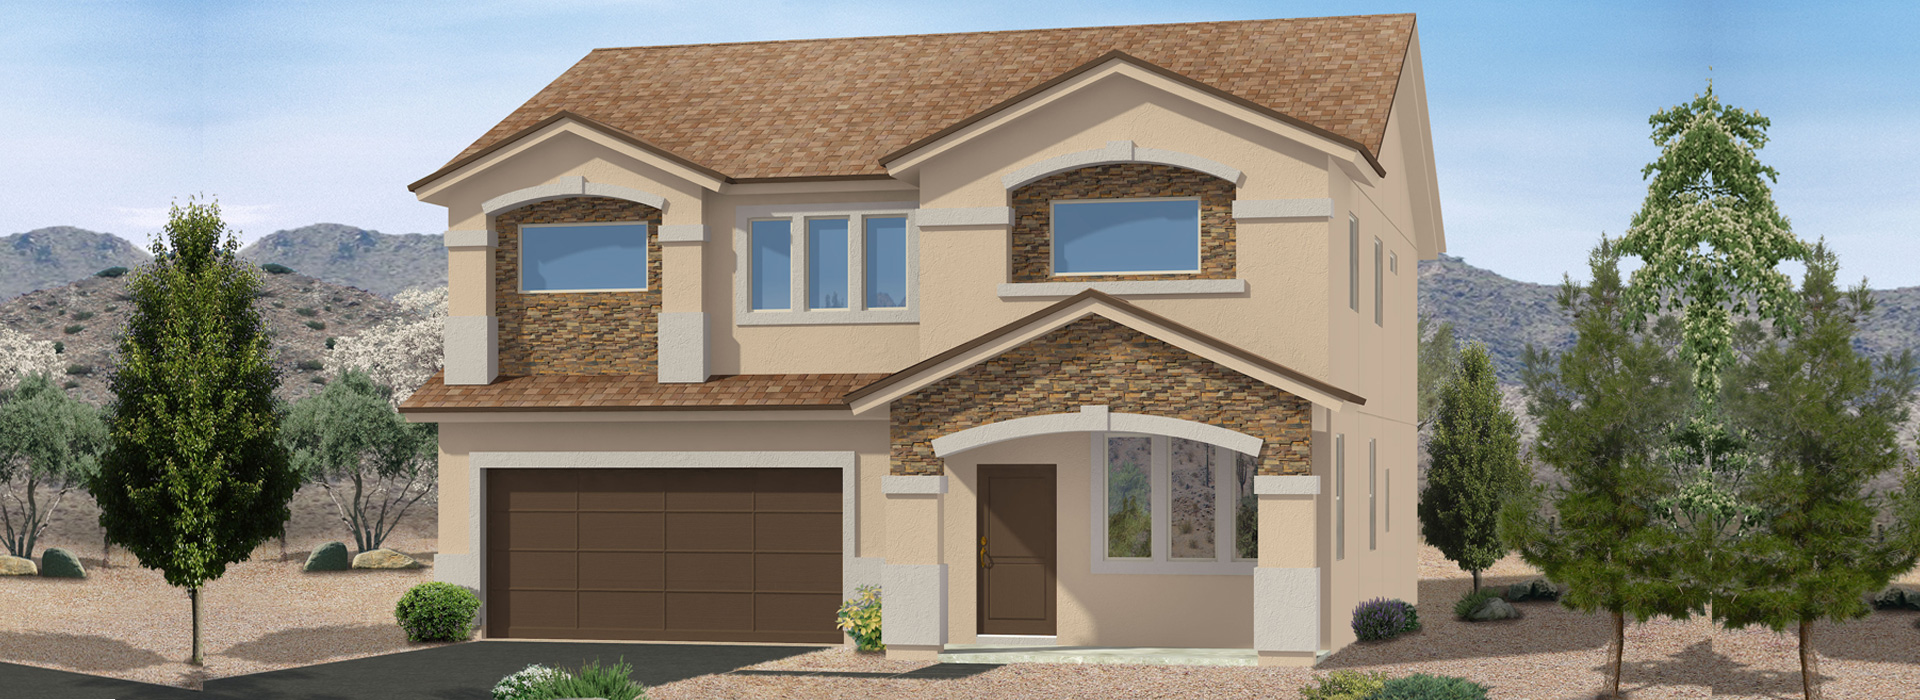 The Franklin Model by CareFree Homes